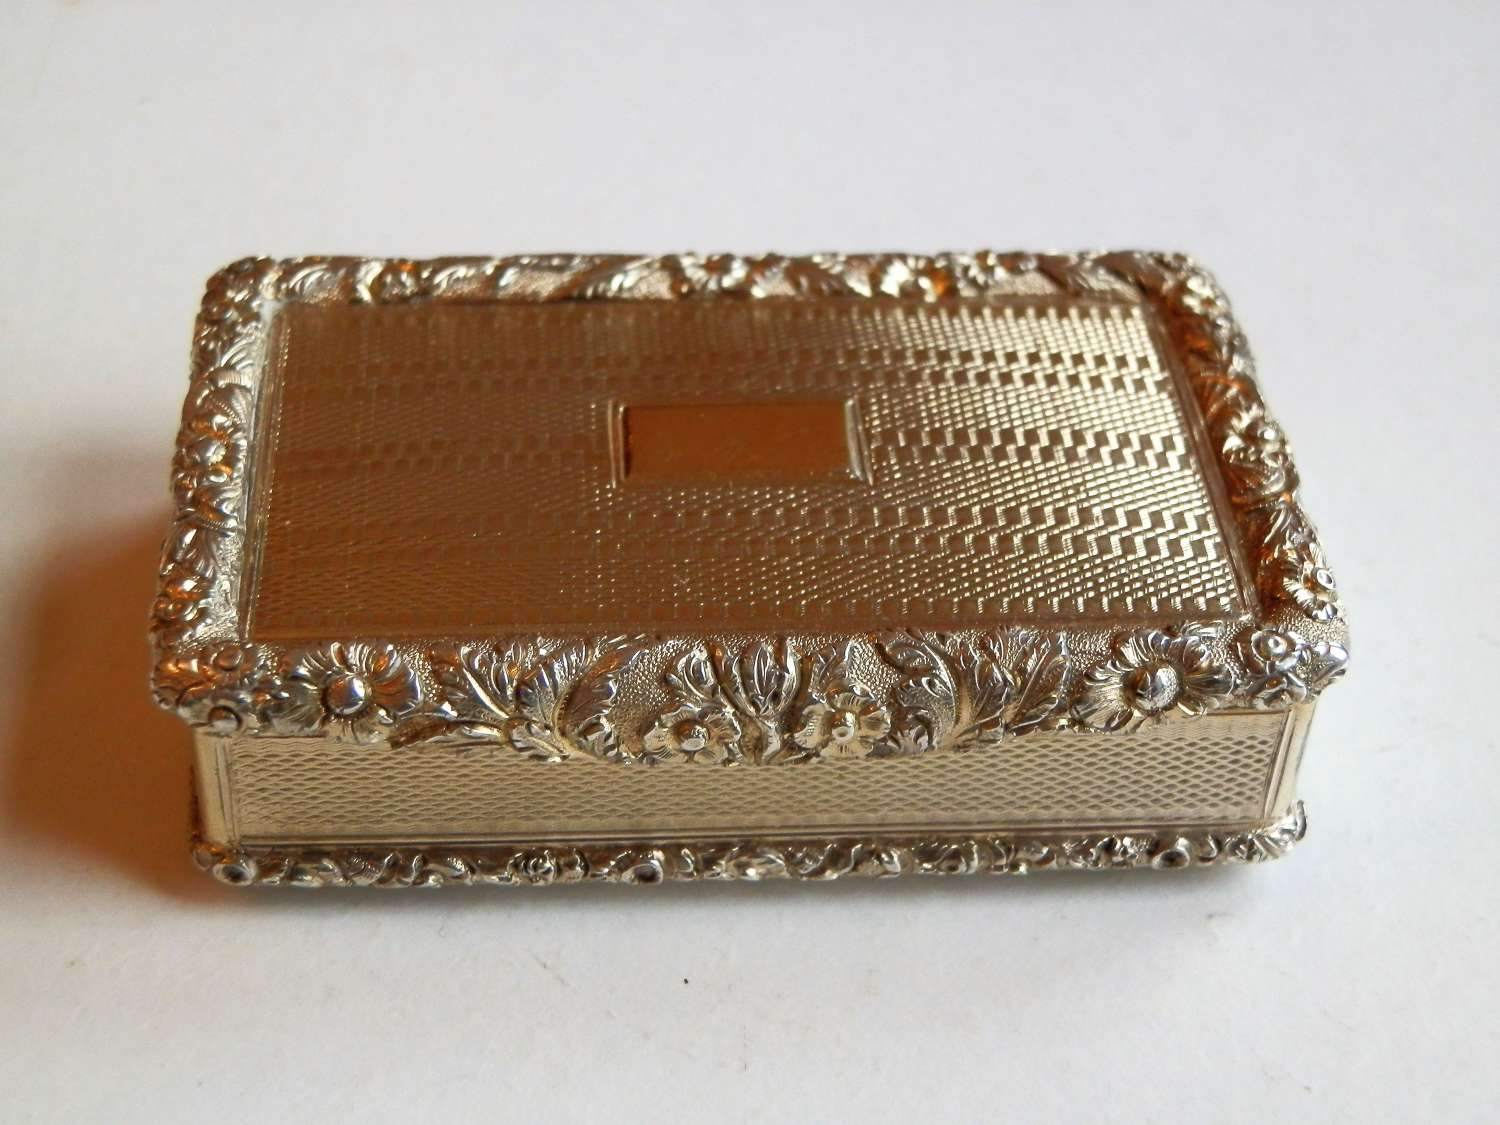 A stunning George IV silver gilt snuff box, Thomas Peacock 1825